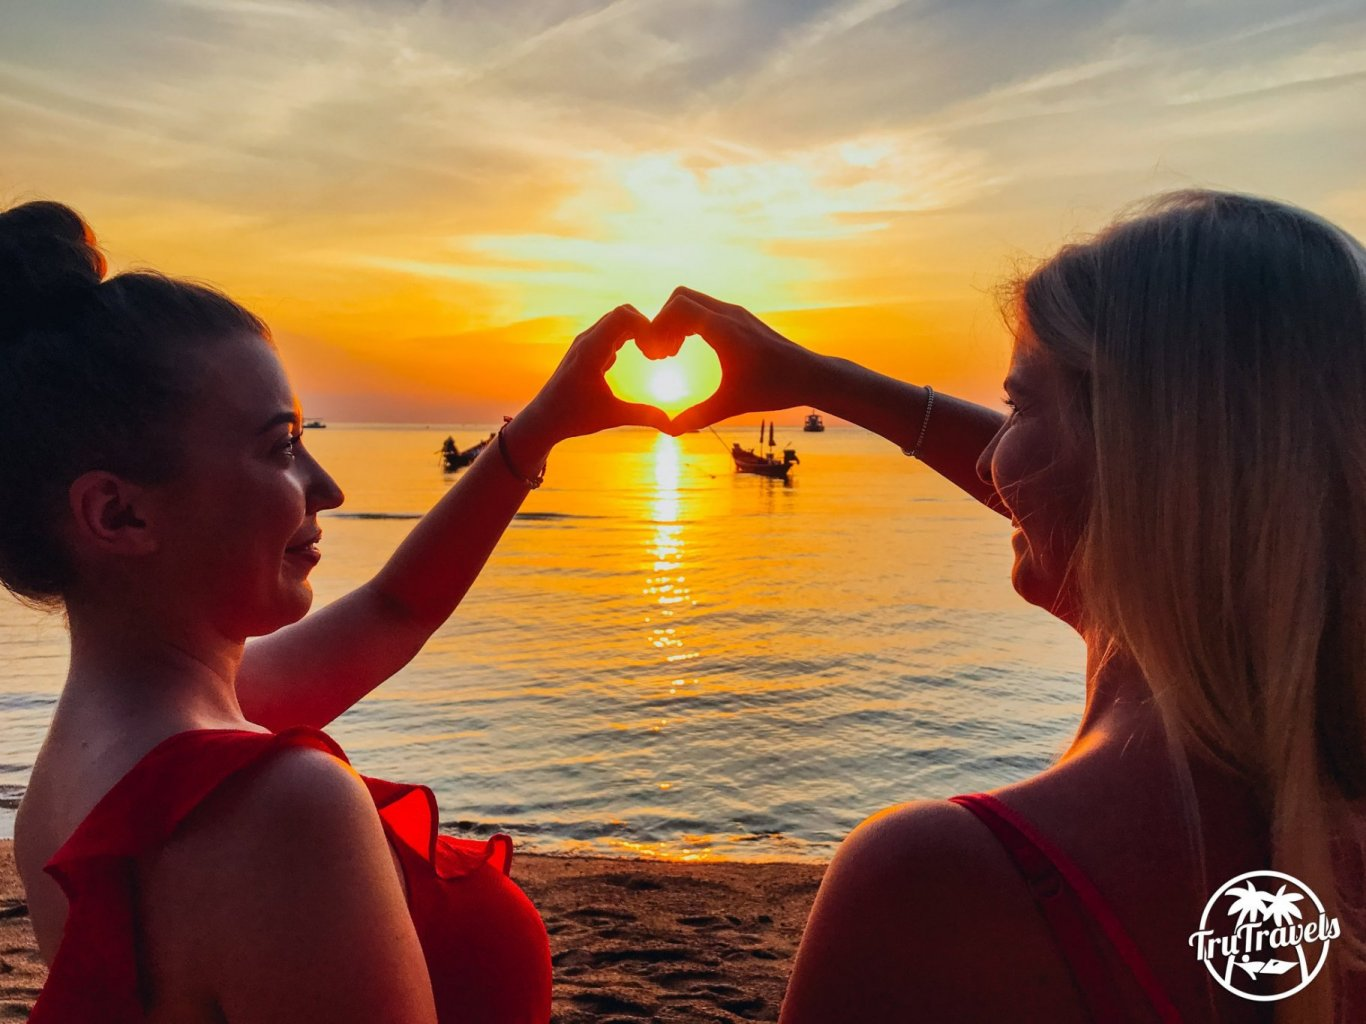 Girls on the beach, sunset with heart hands